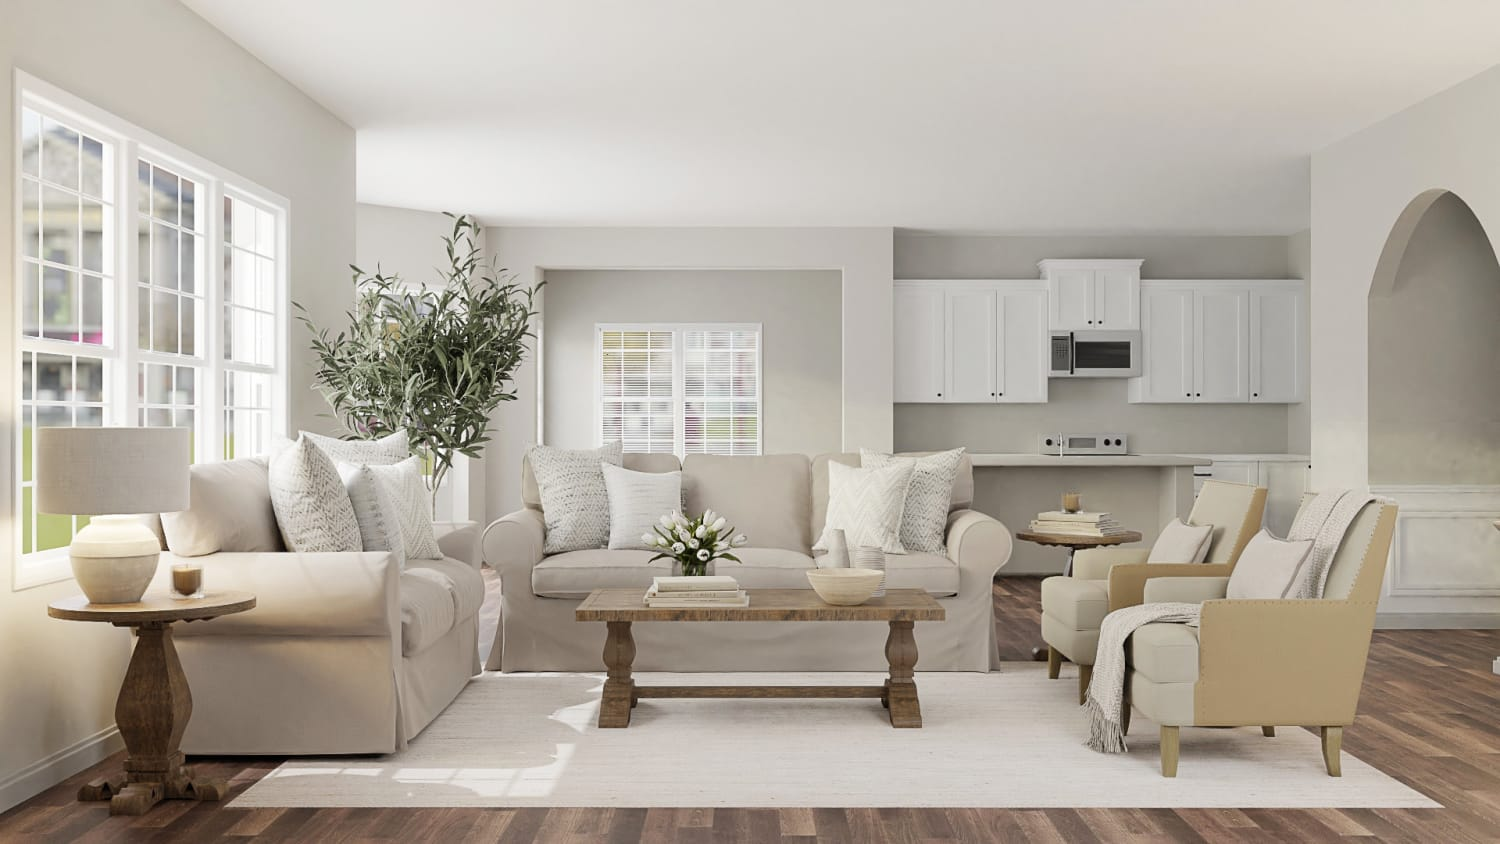 Inviting & Calming Classic Living Room Design By Spacejoy